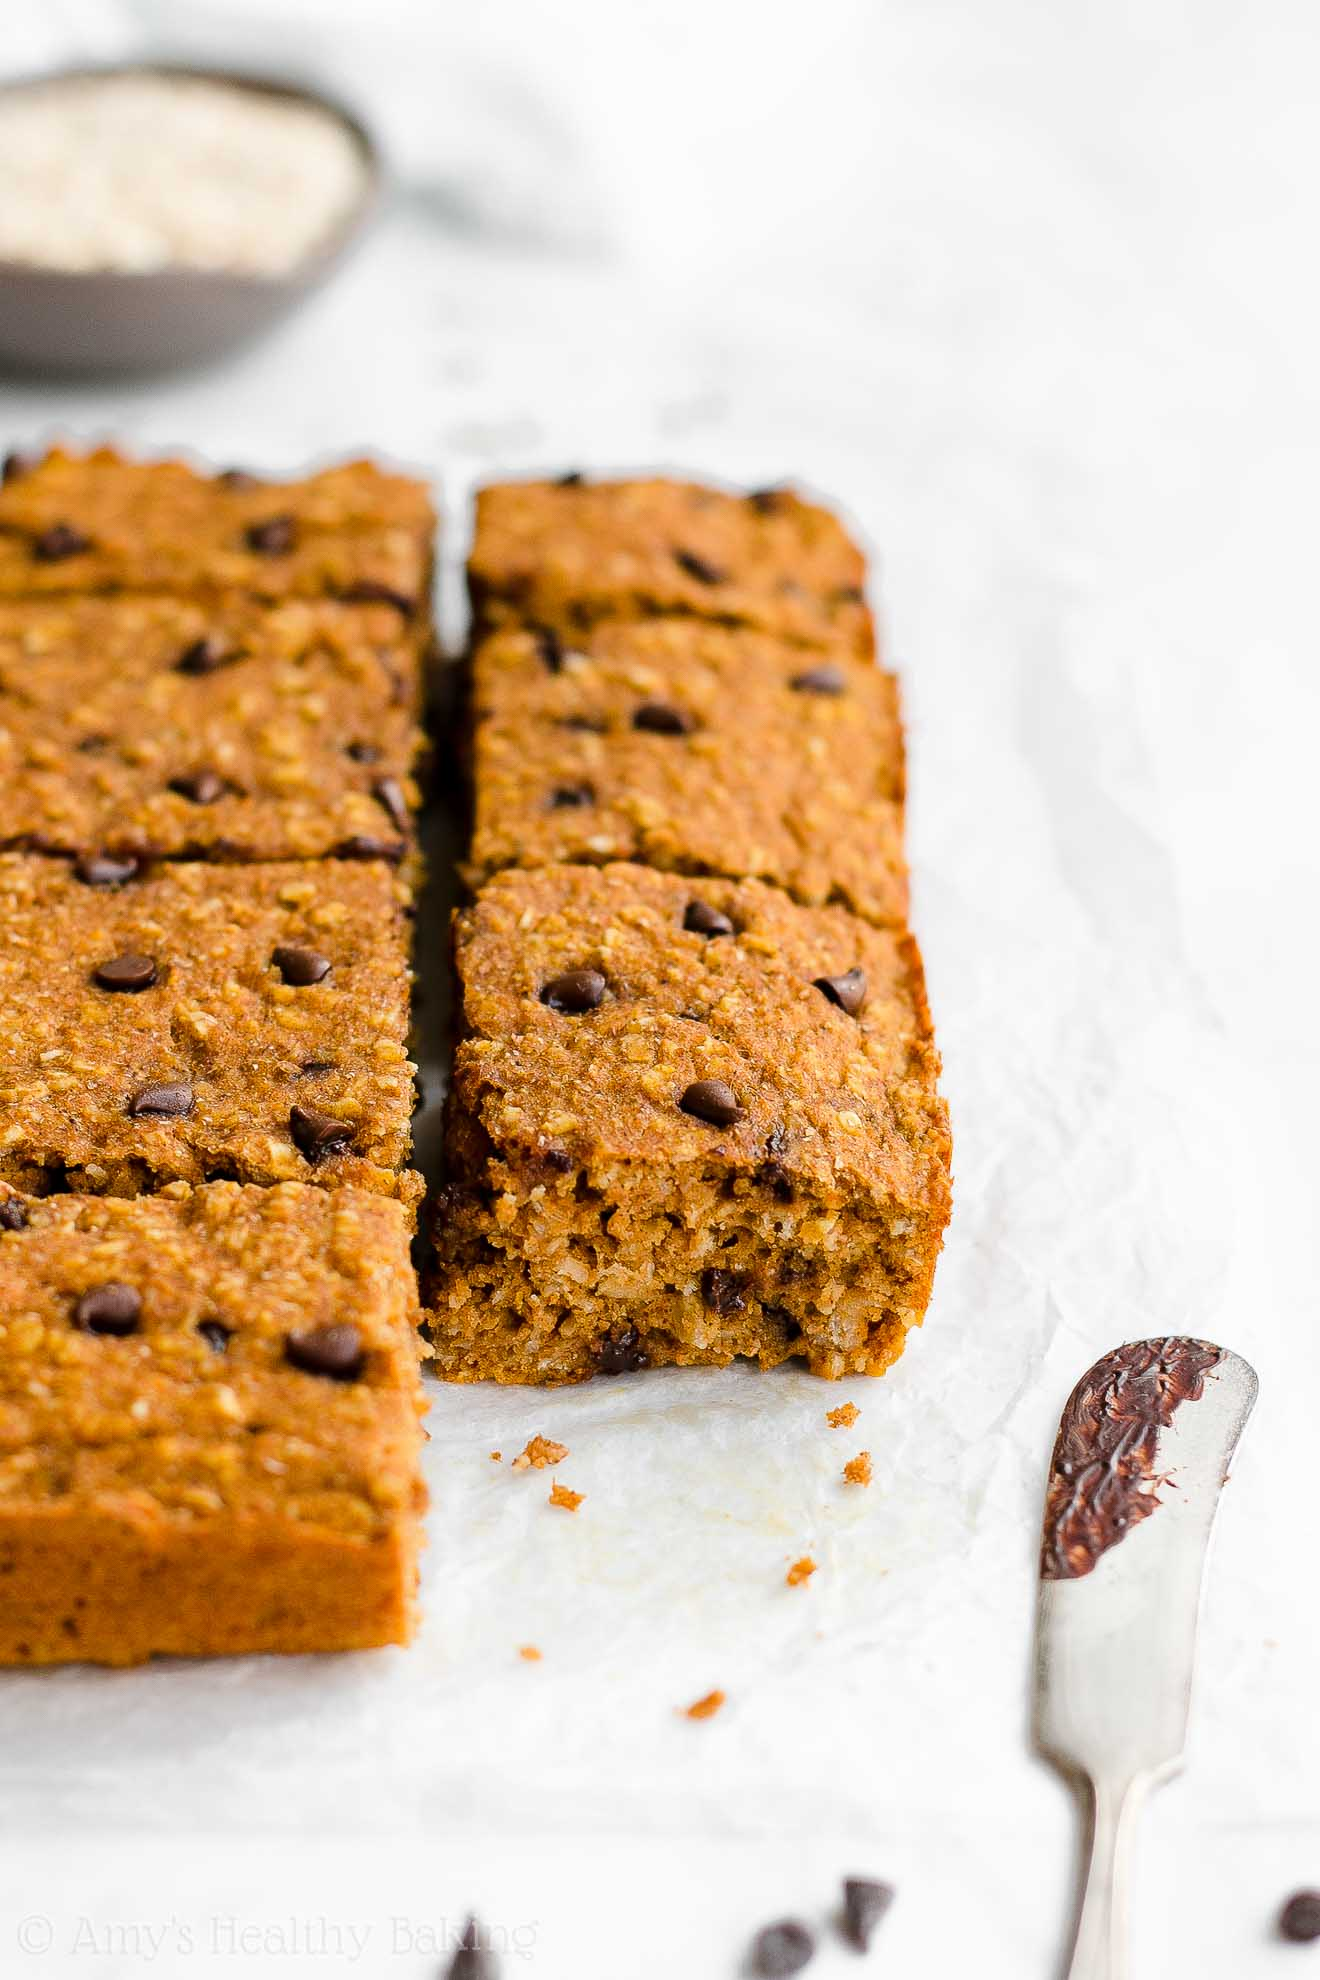 Simple Healthy Low Calorie Pumpkin Chocolate Chip Oatmeal Snack Cake for kids